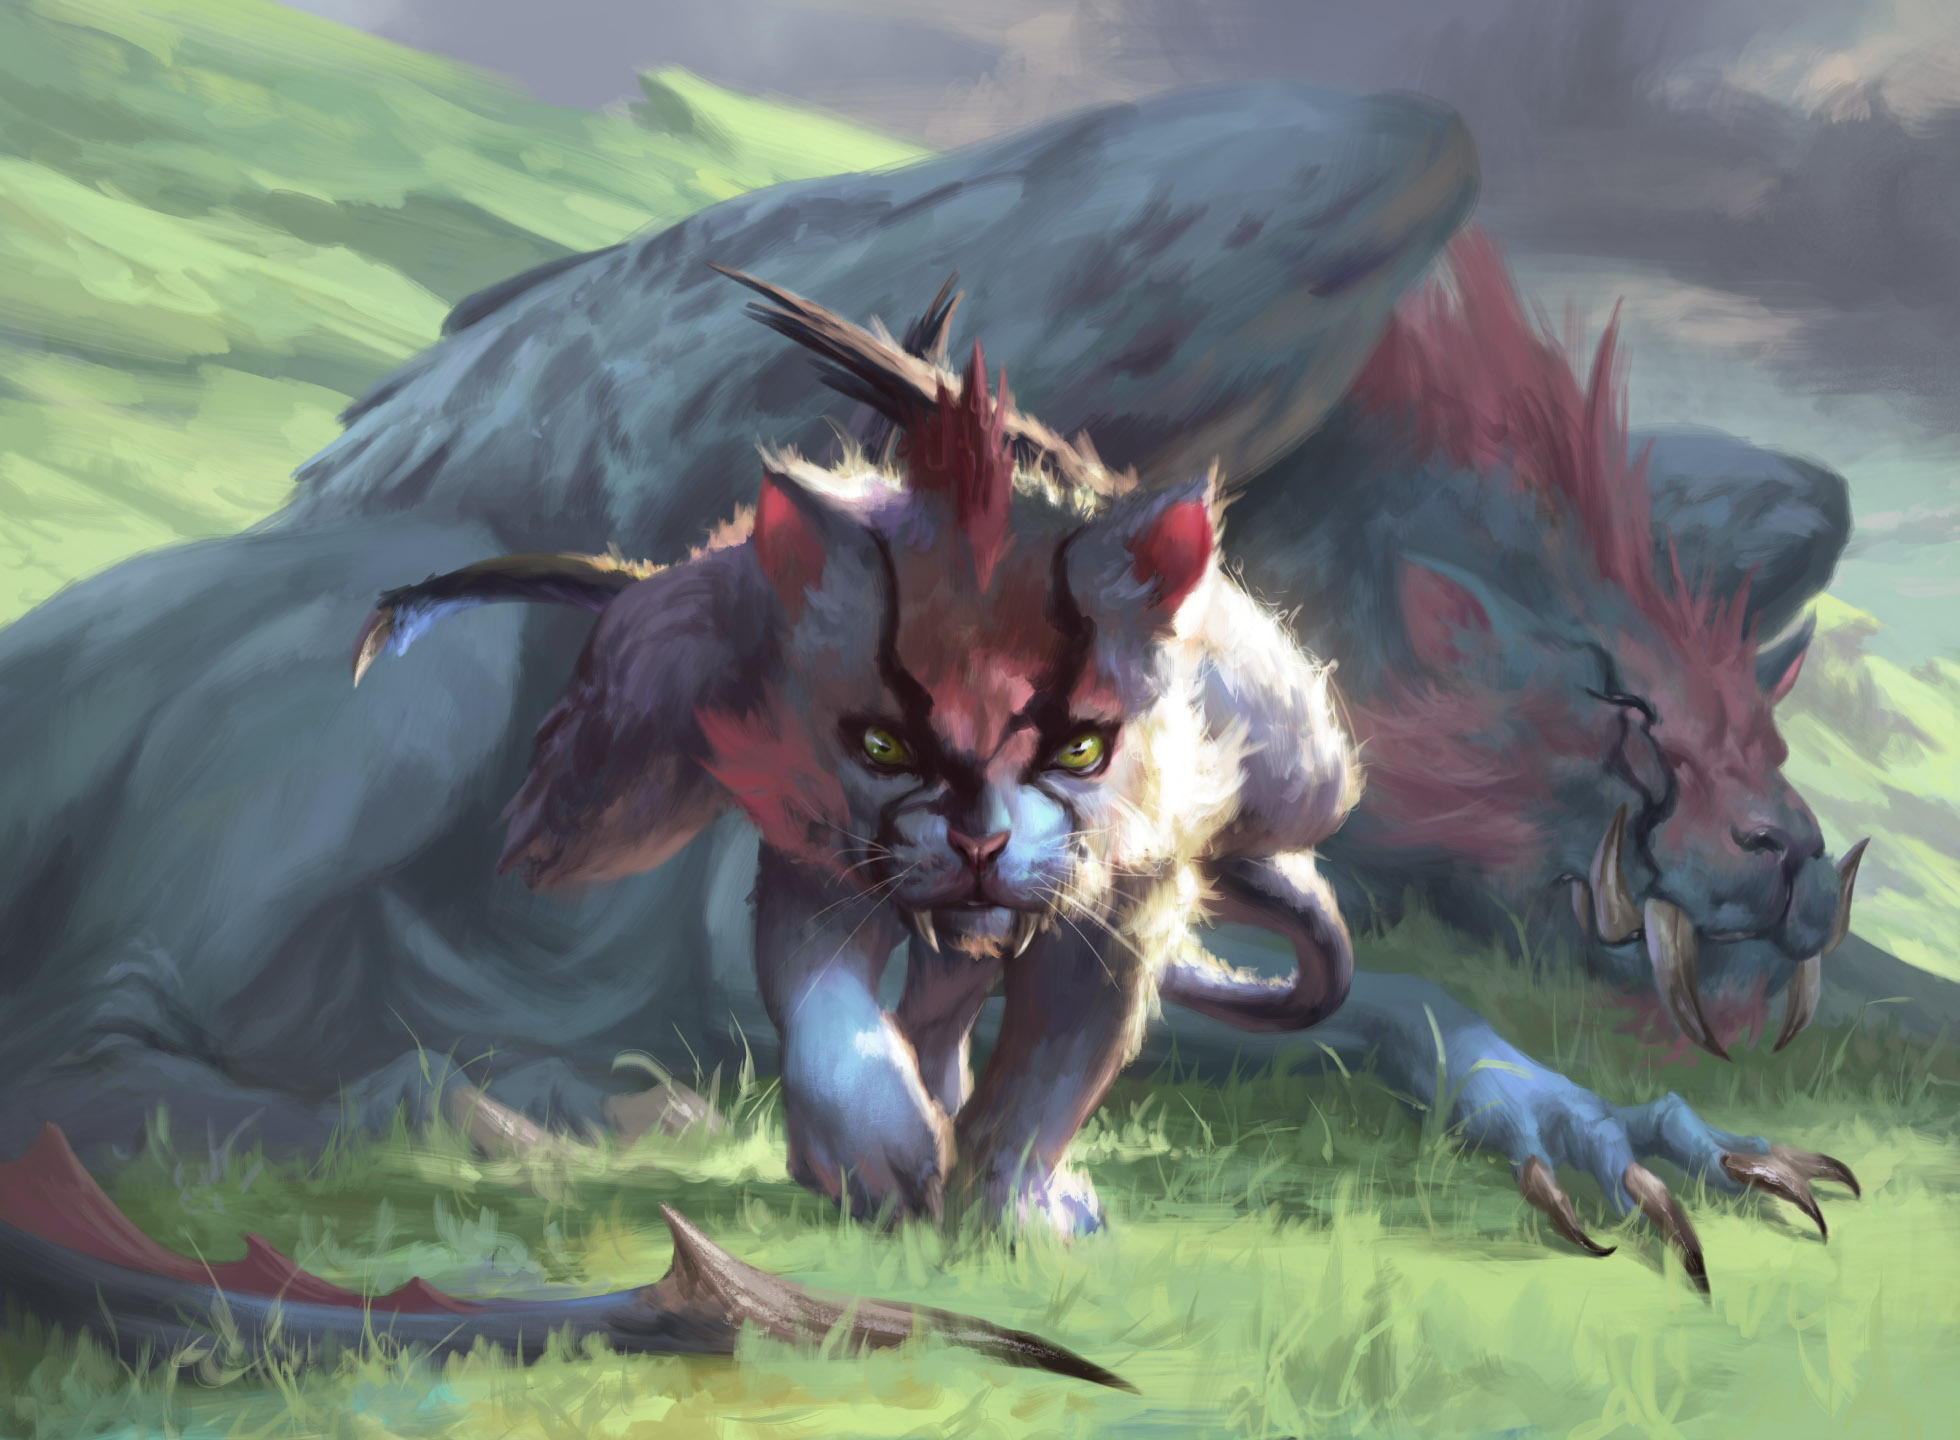 Offspring's Revenge: The Most Fun You'll Have in Standard?